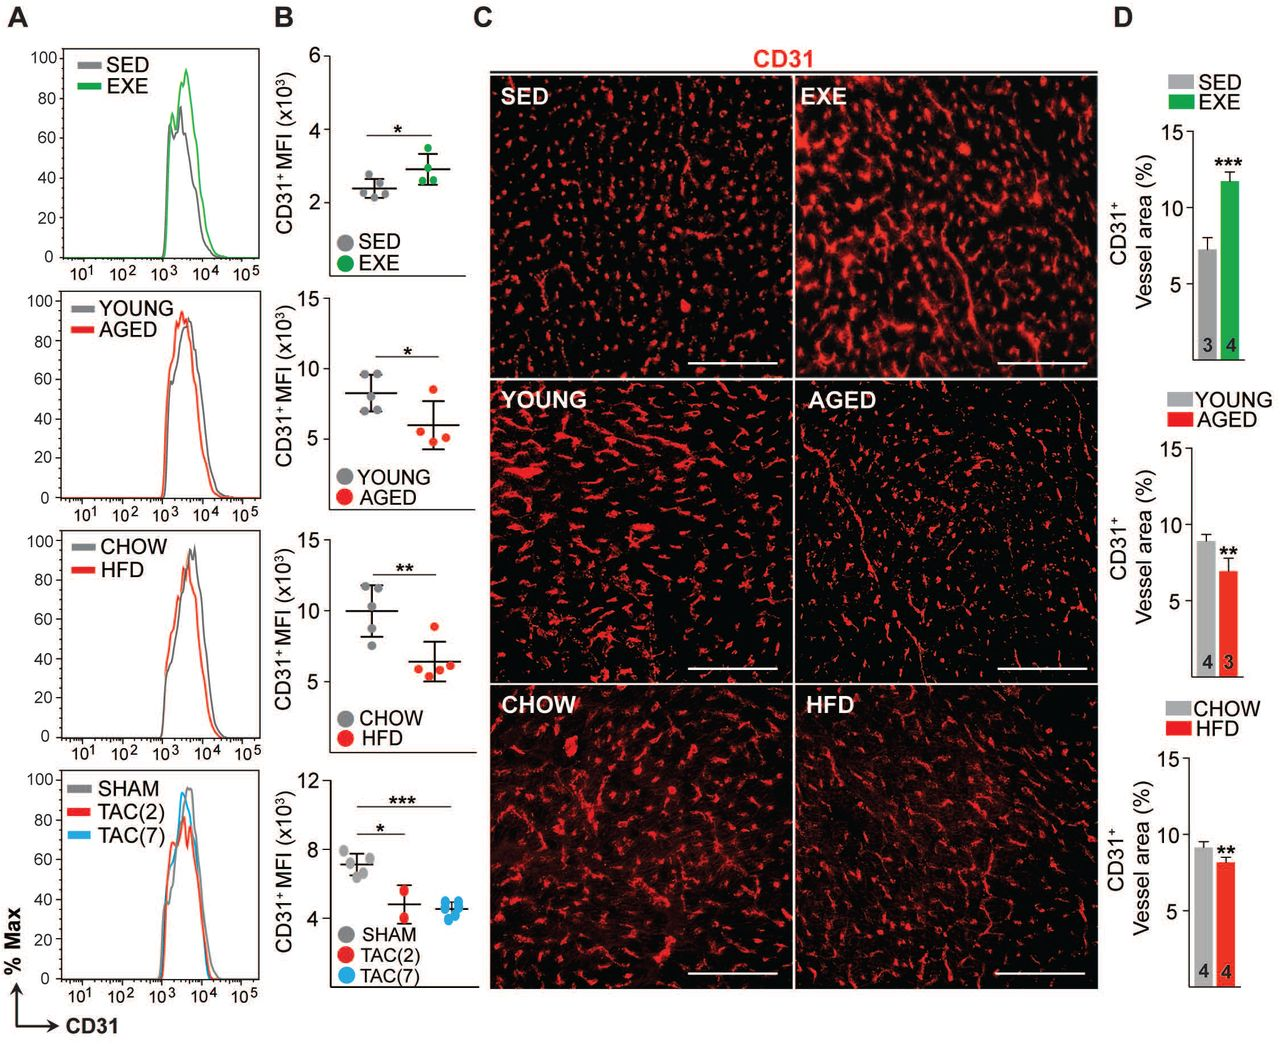 Effects of exercise training, aging, obesity and pressure overload on cardiac endothelial cell number and vascular density. A-B. FACS analysis and quantification of mean fluorescence intensity (MFI) of the cardiac endothelial cells (CD31+CD140a-CD45-Ter119-DAPI-) in various mice models. C-D. Representative immunofluorescence images and quantification of CD31+ blood vessel area (%) in the heart. Scale bar, 100μm. Data is presented as mean ± SEM. Student's t test was used, *p